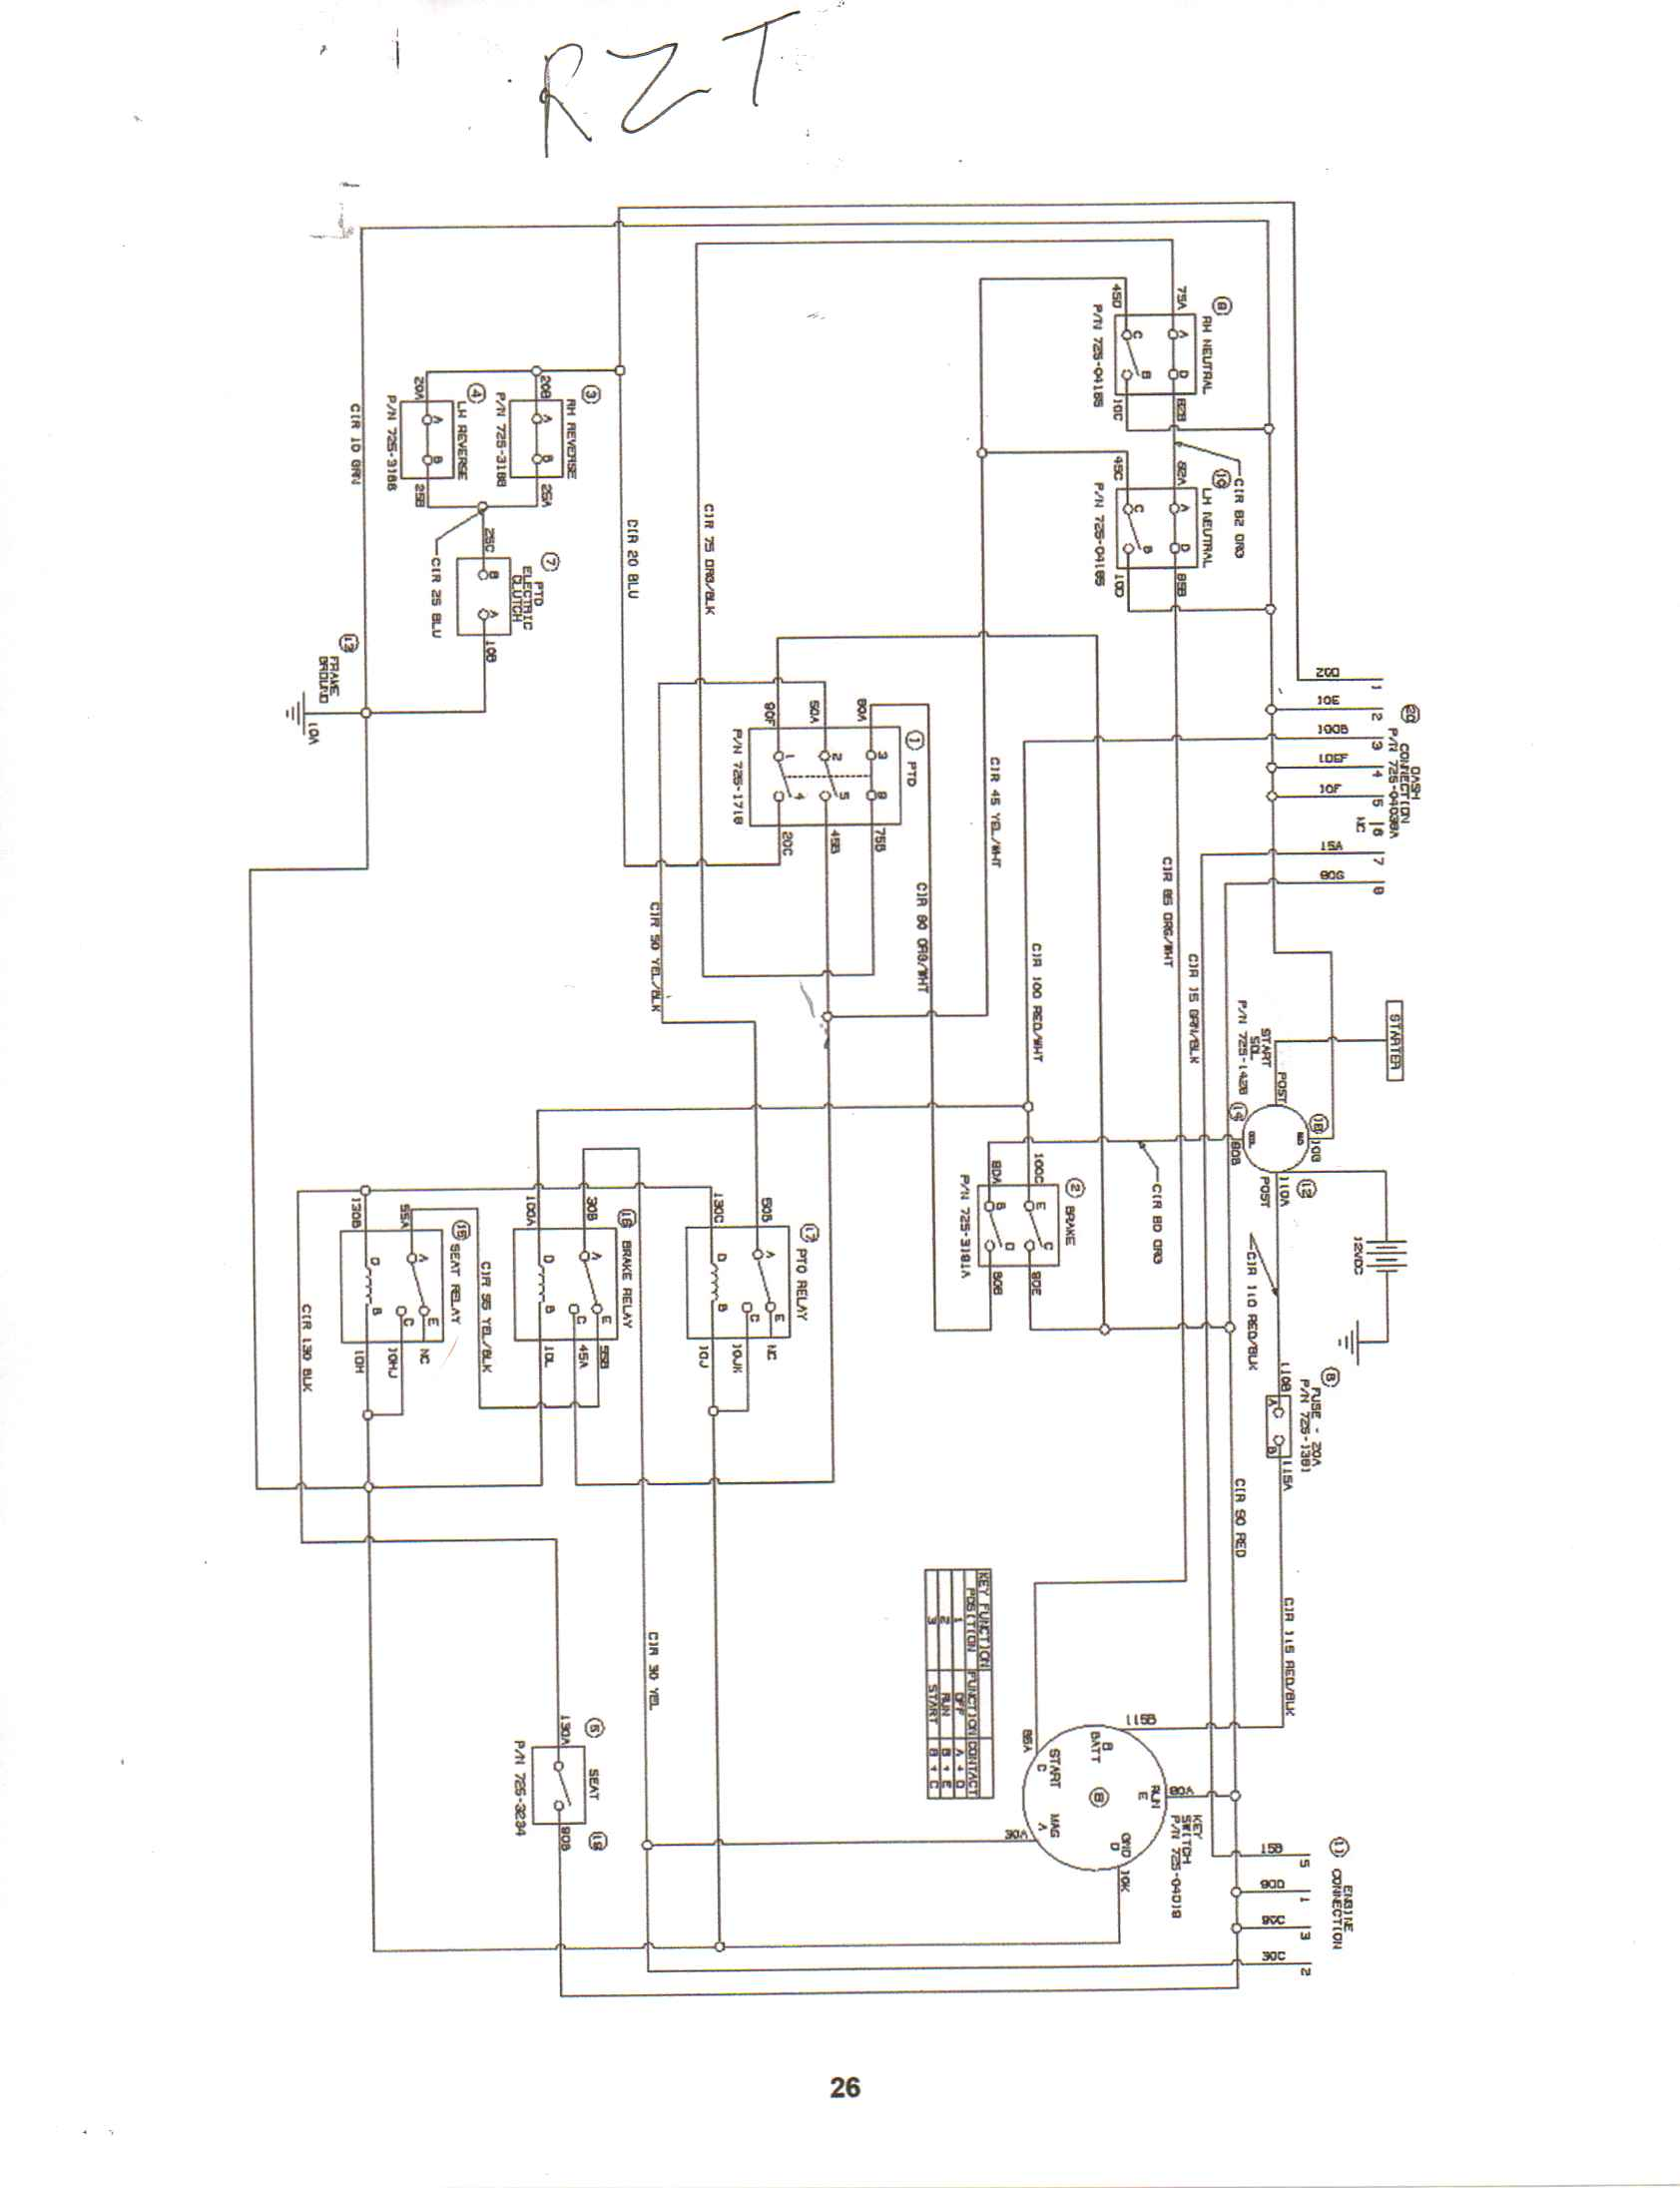 Wiring Diagram For A Cub Cadet Rzt 50